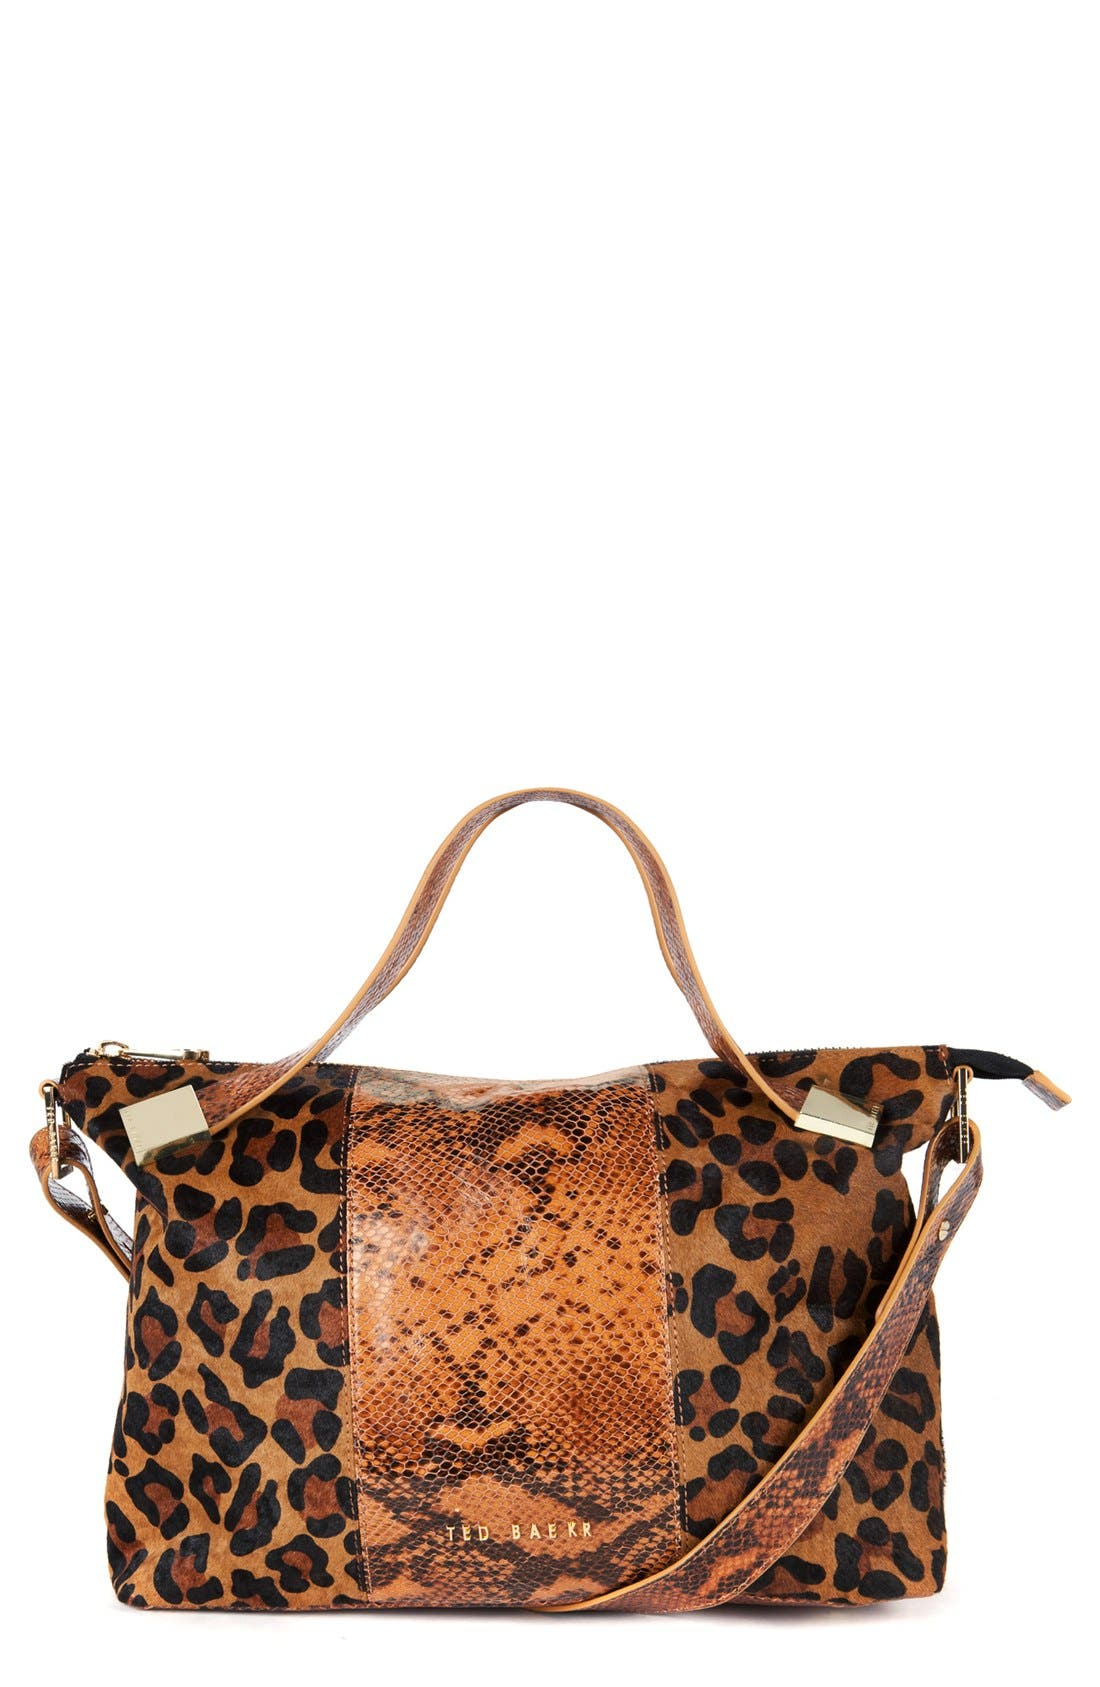 Main Image - Ted Baker London 'Autumny' Tote